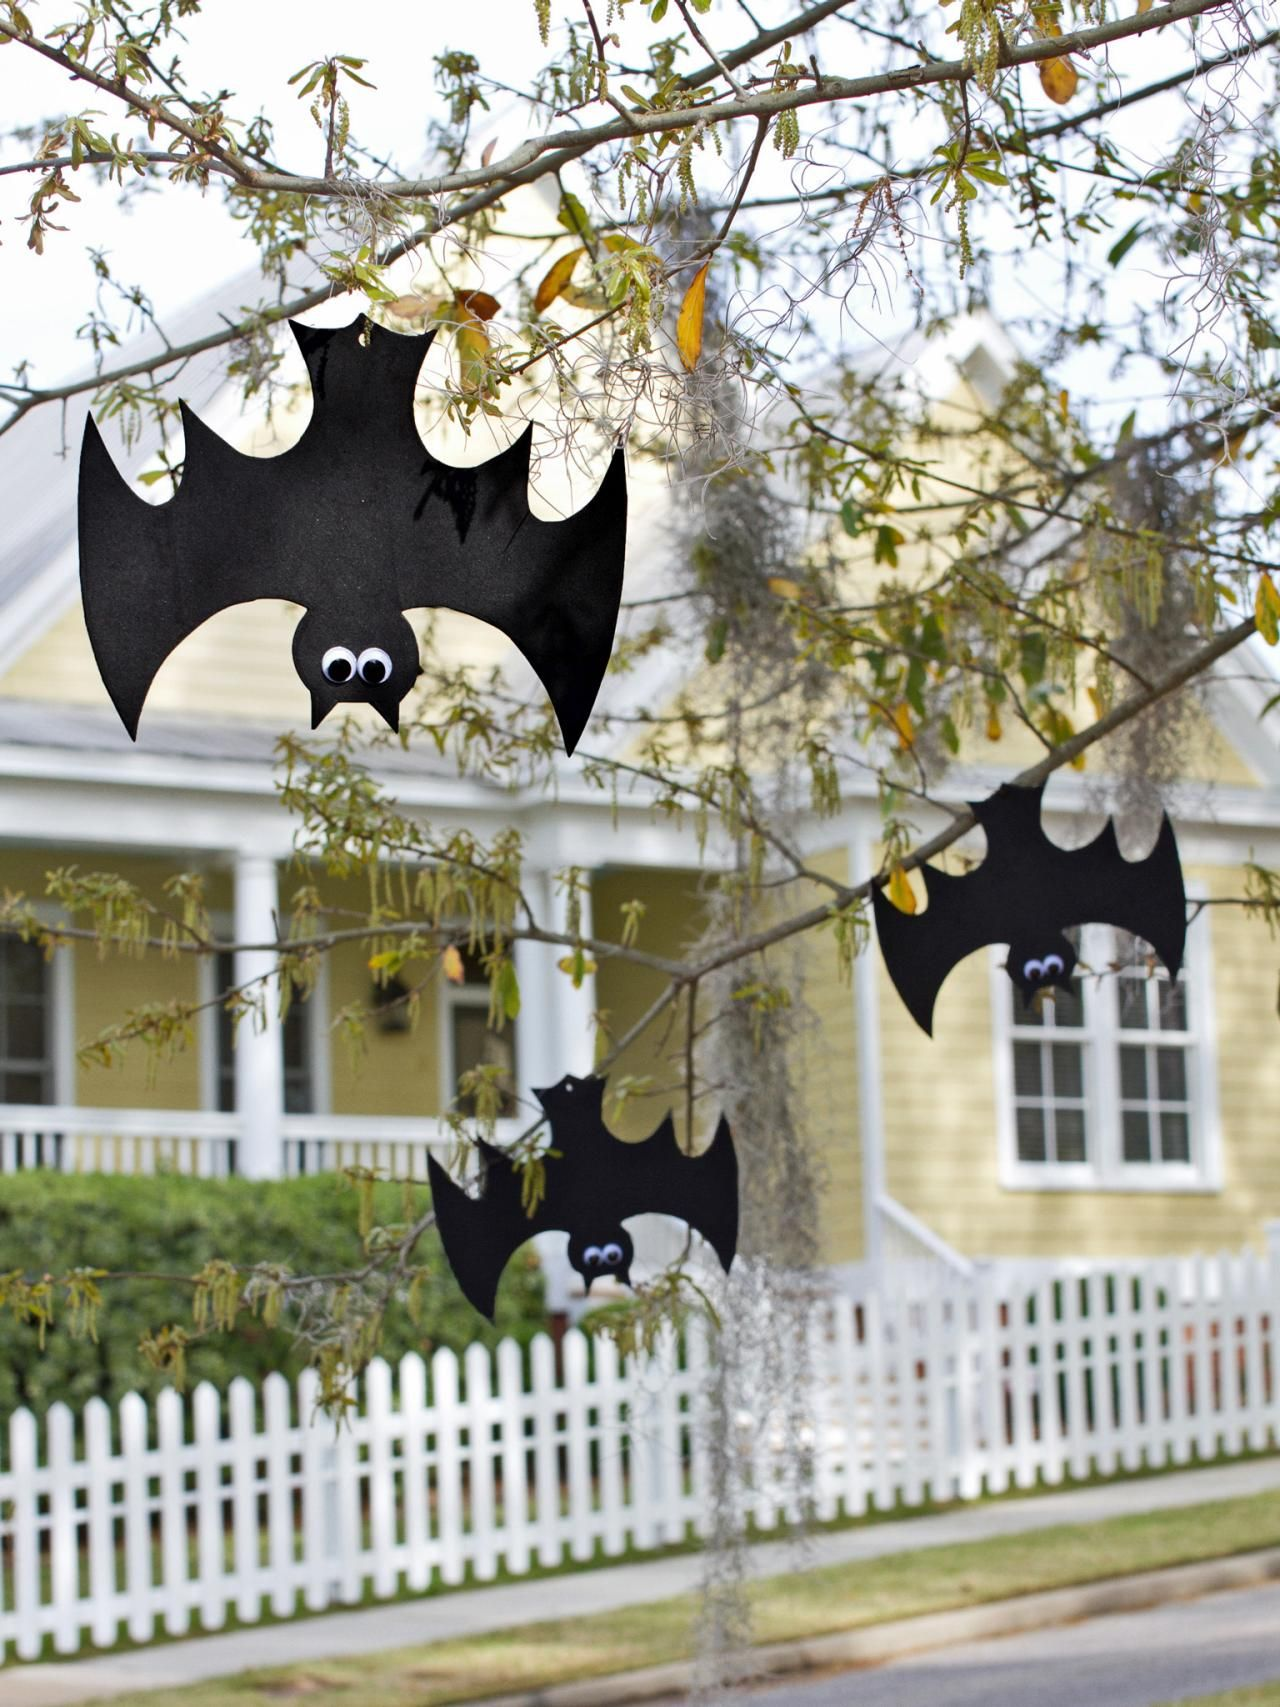 65+ DIY Halloween Decorations  Decorating Ideas Halloween parties - Halloween House Decorating Ideas Outside